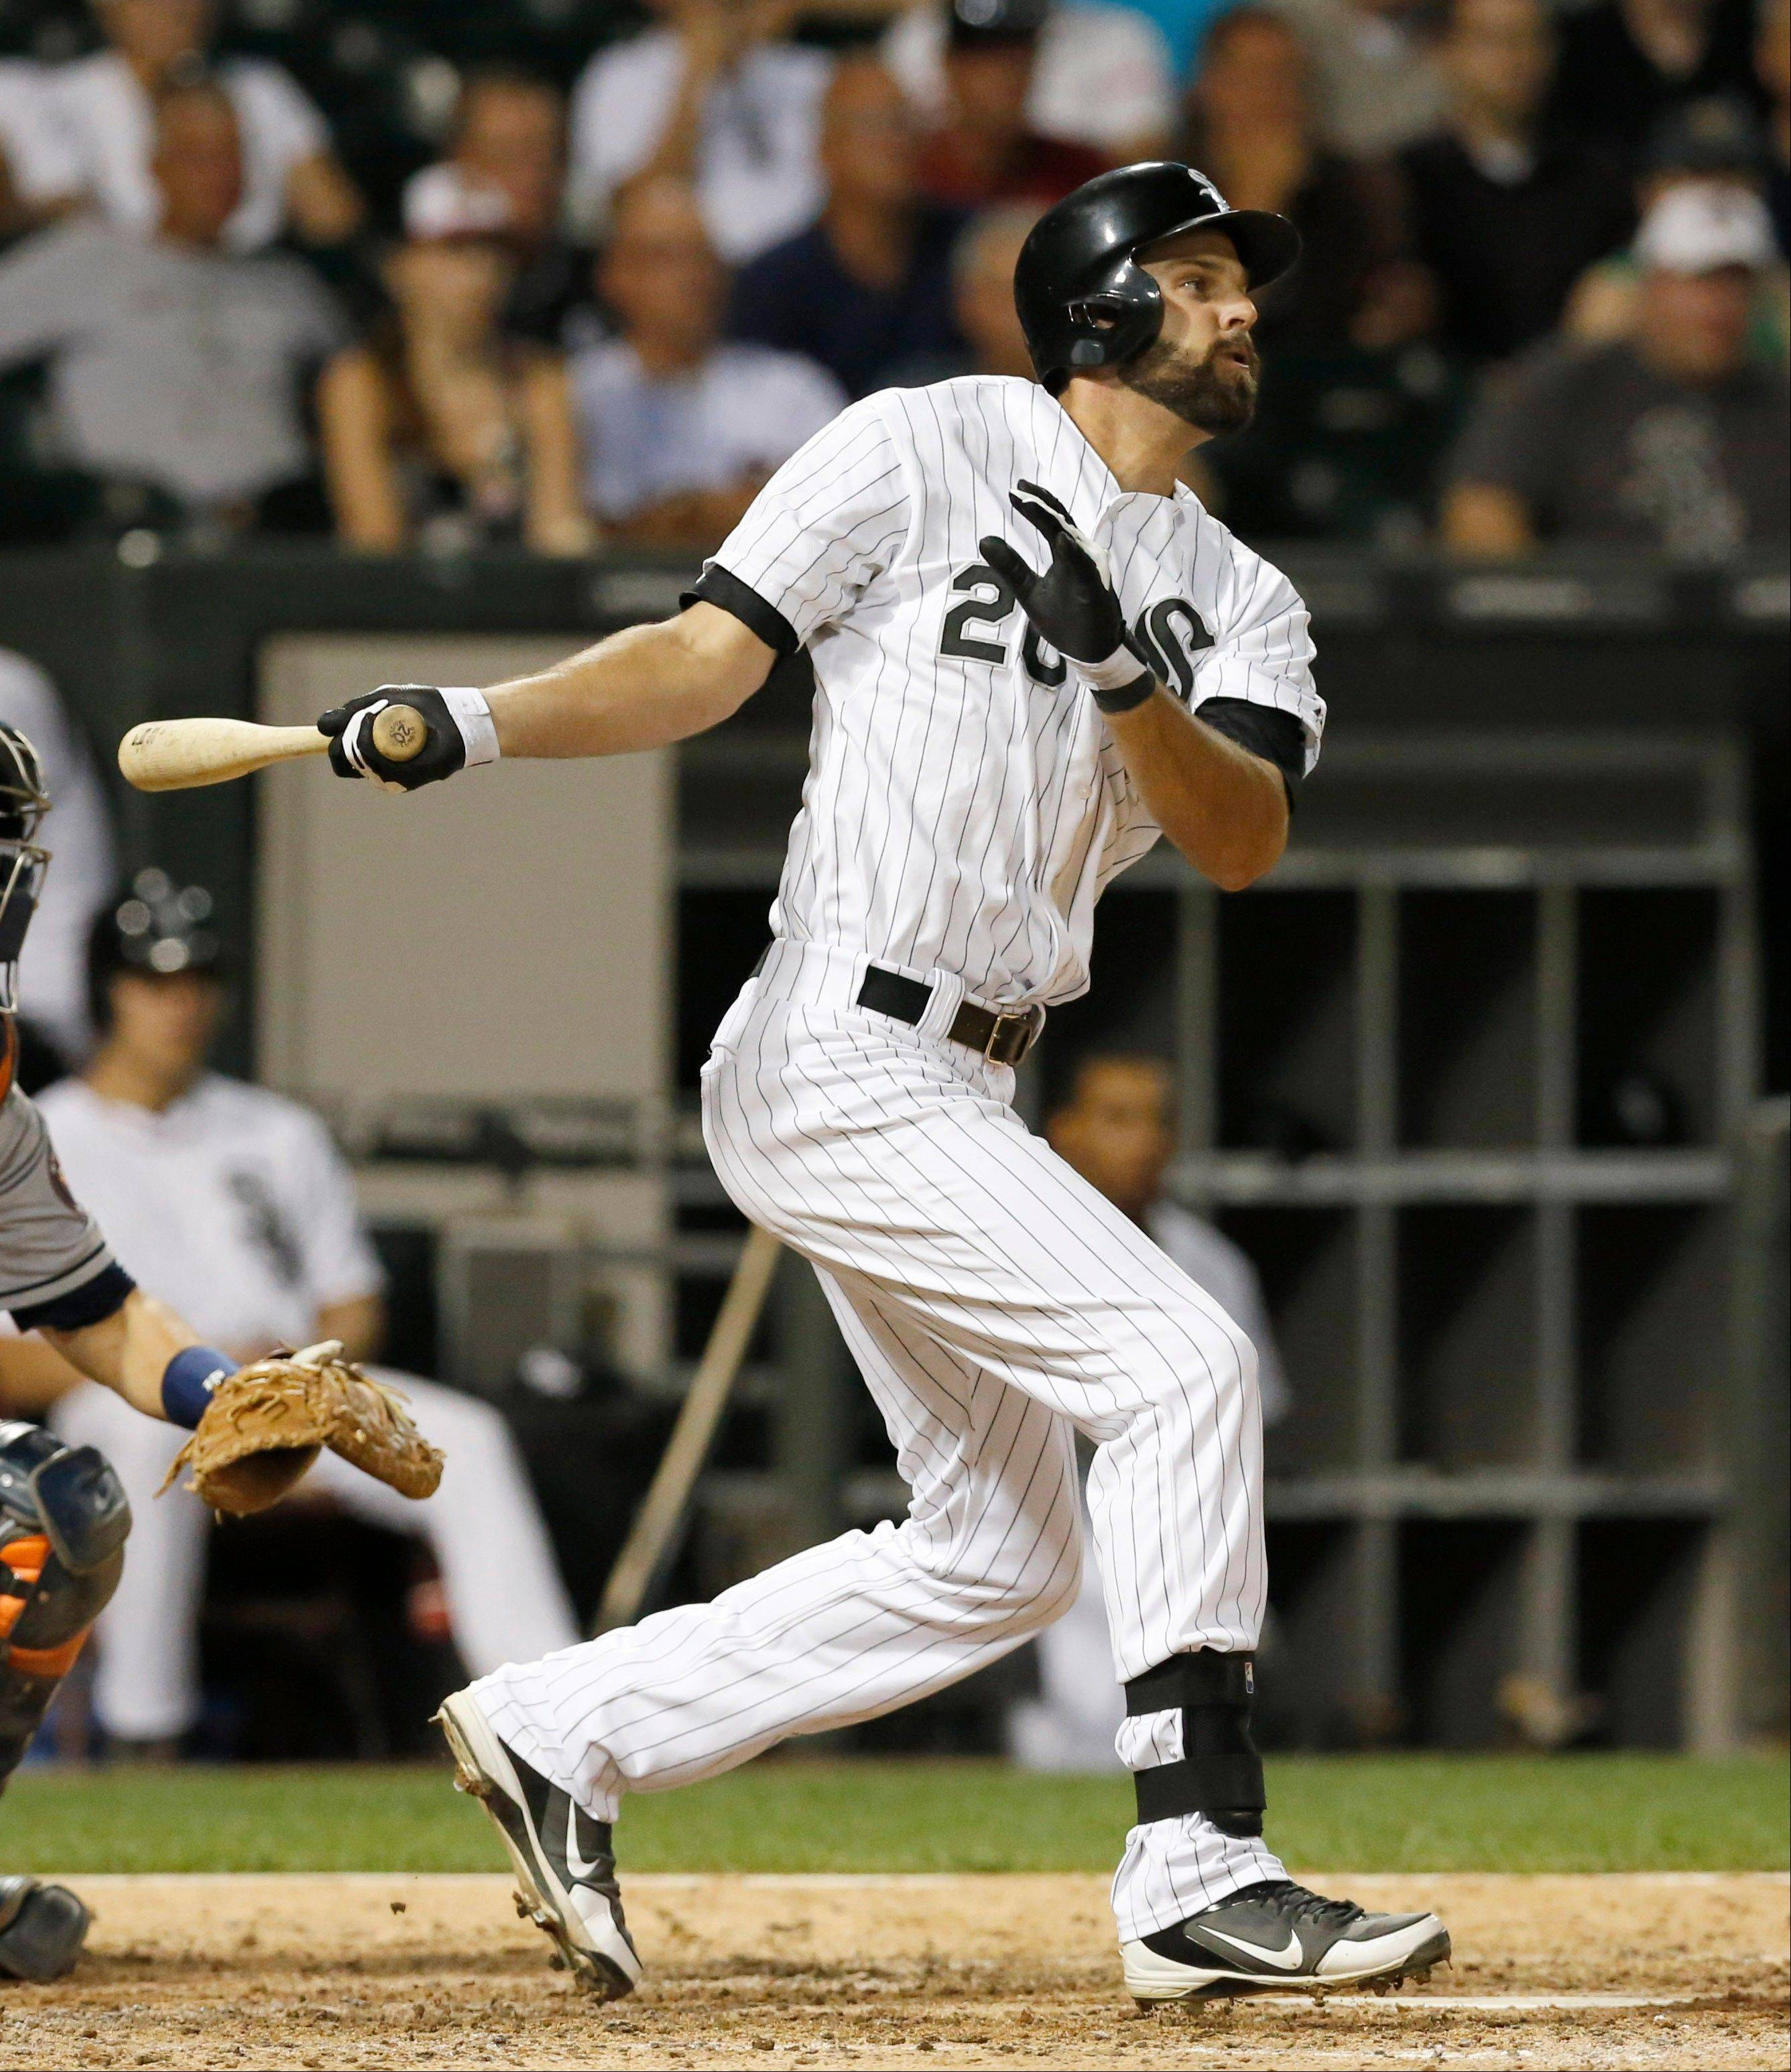 The White Sox's Jordan Danks hits a two-run single off Houston Astros relief pitcher Erik Bedard, scoring Alexei Ramirez and Gordon Beckham, during Tuesday's game at U.S. Cellular Field.